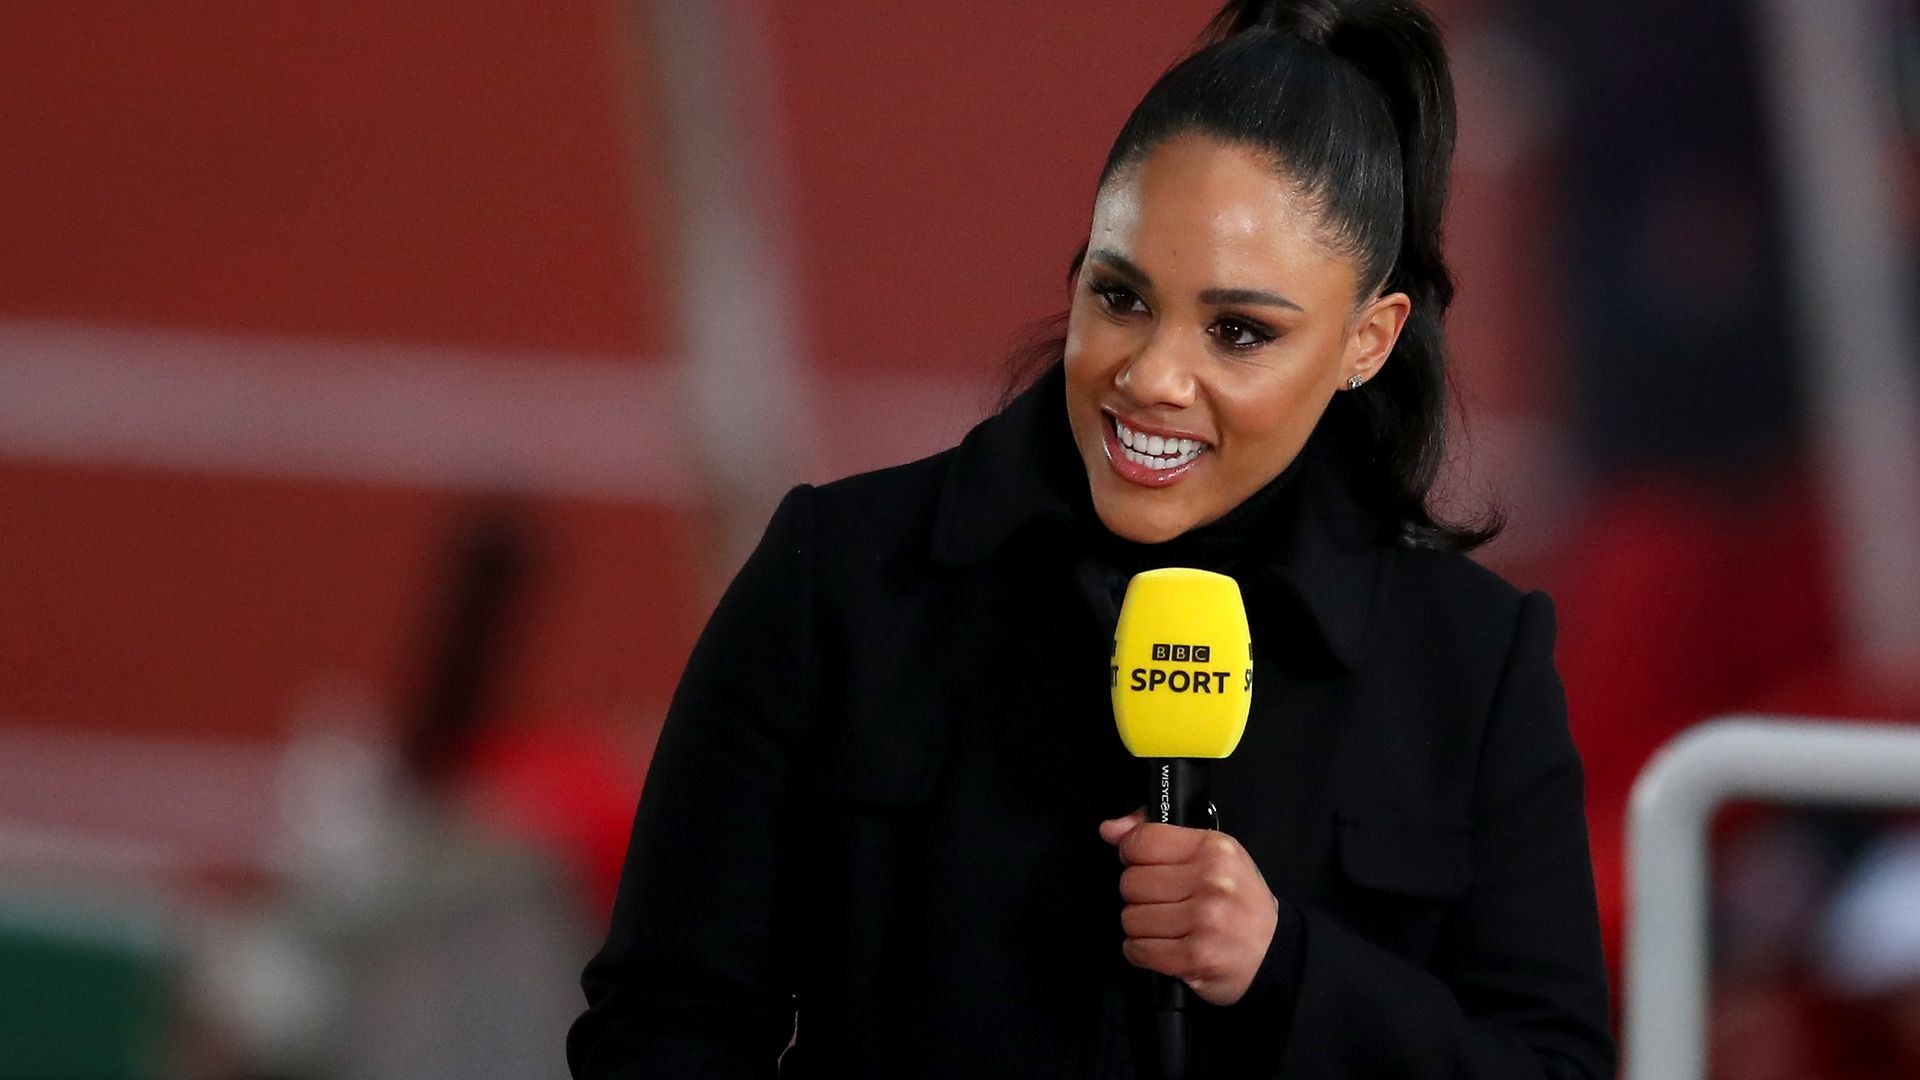 BBC sports pundit Alex Scott, whose accent has been criticised - Credit: Getty Images